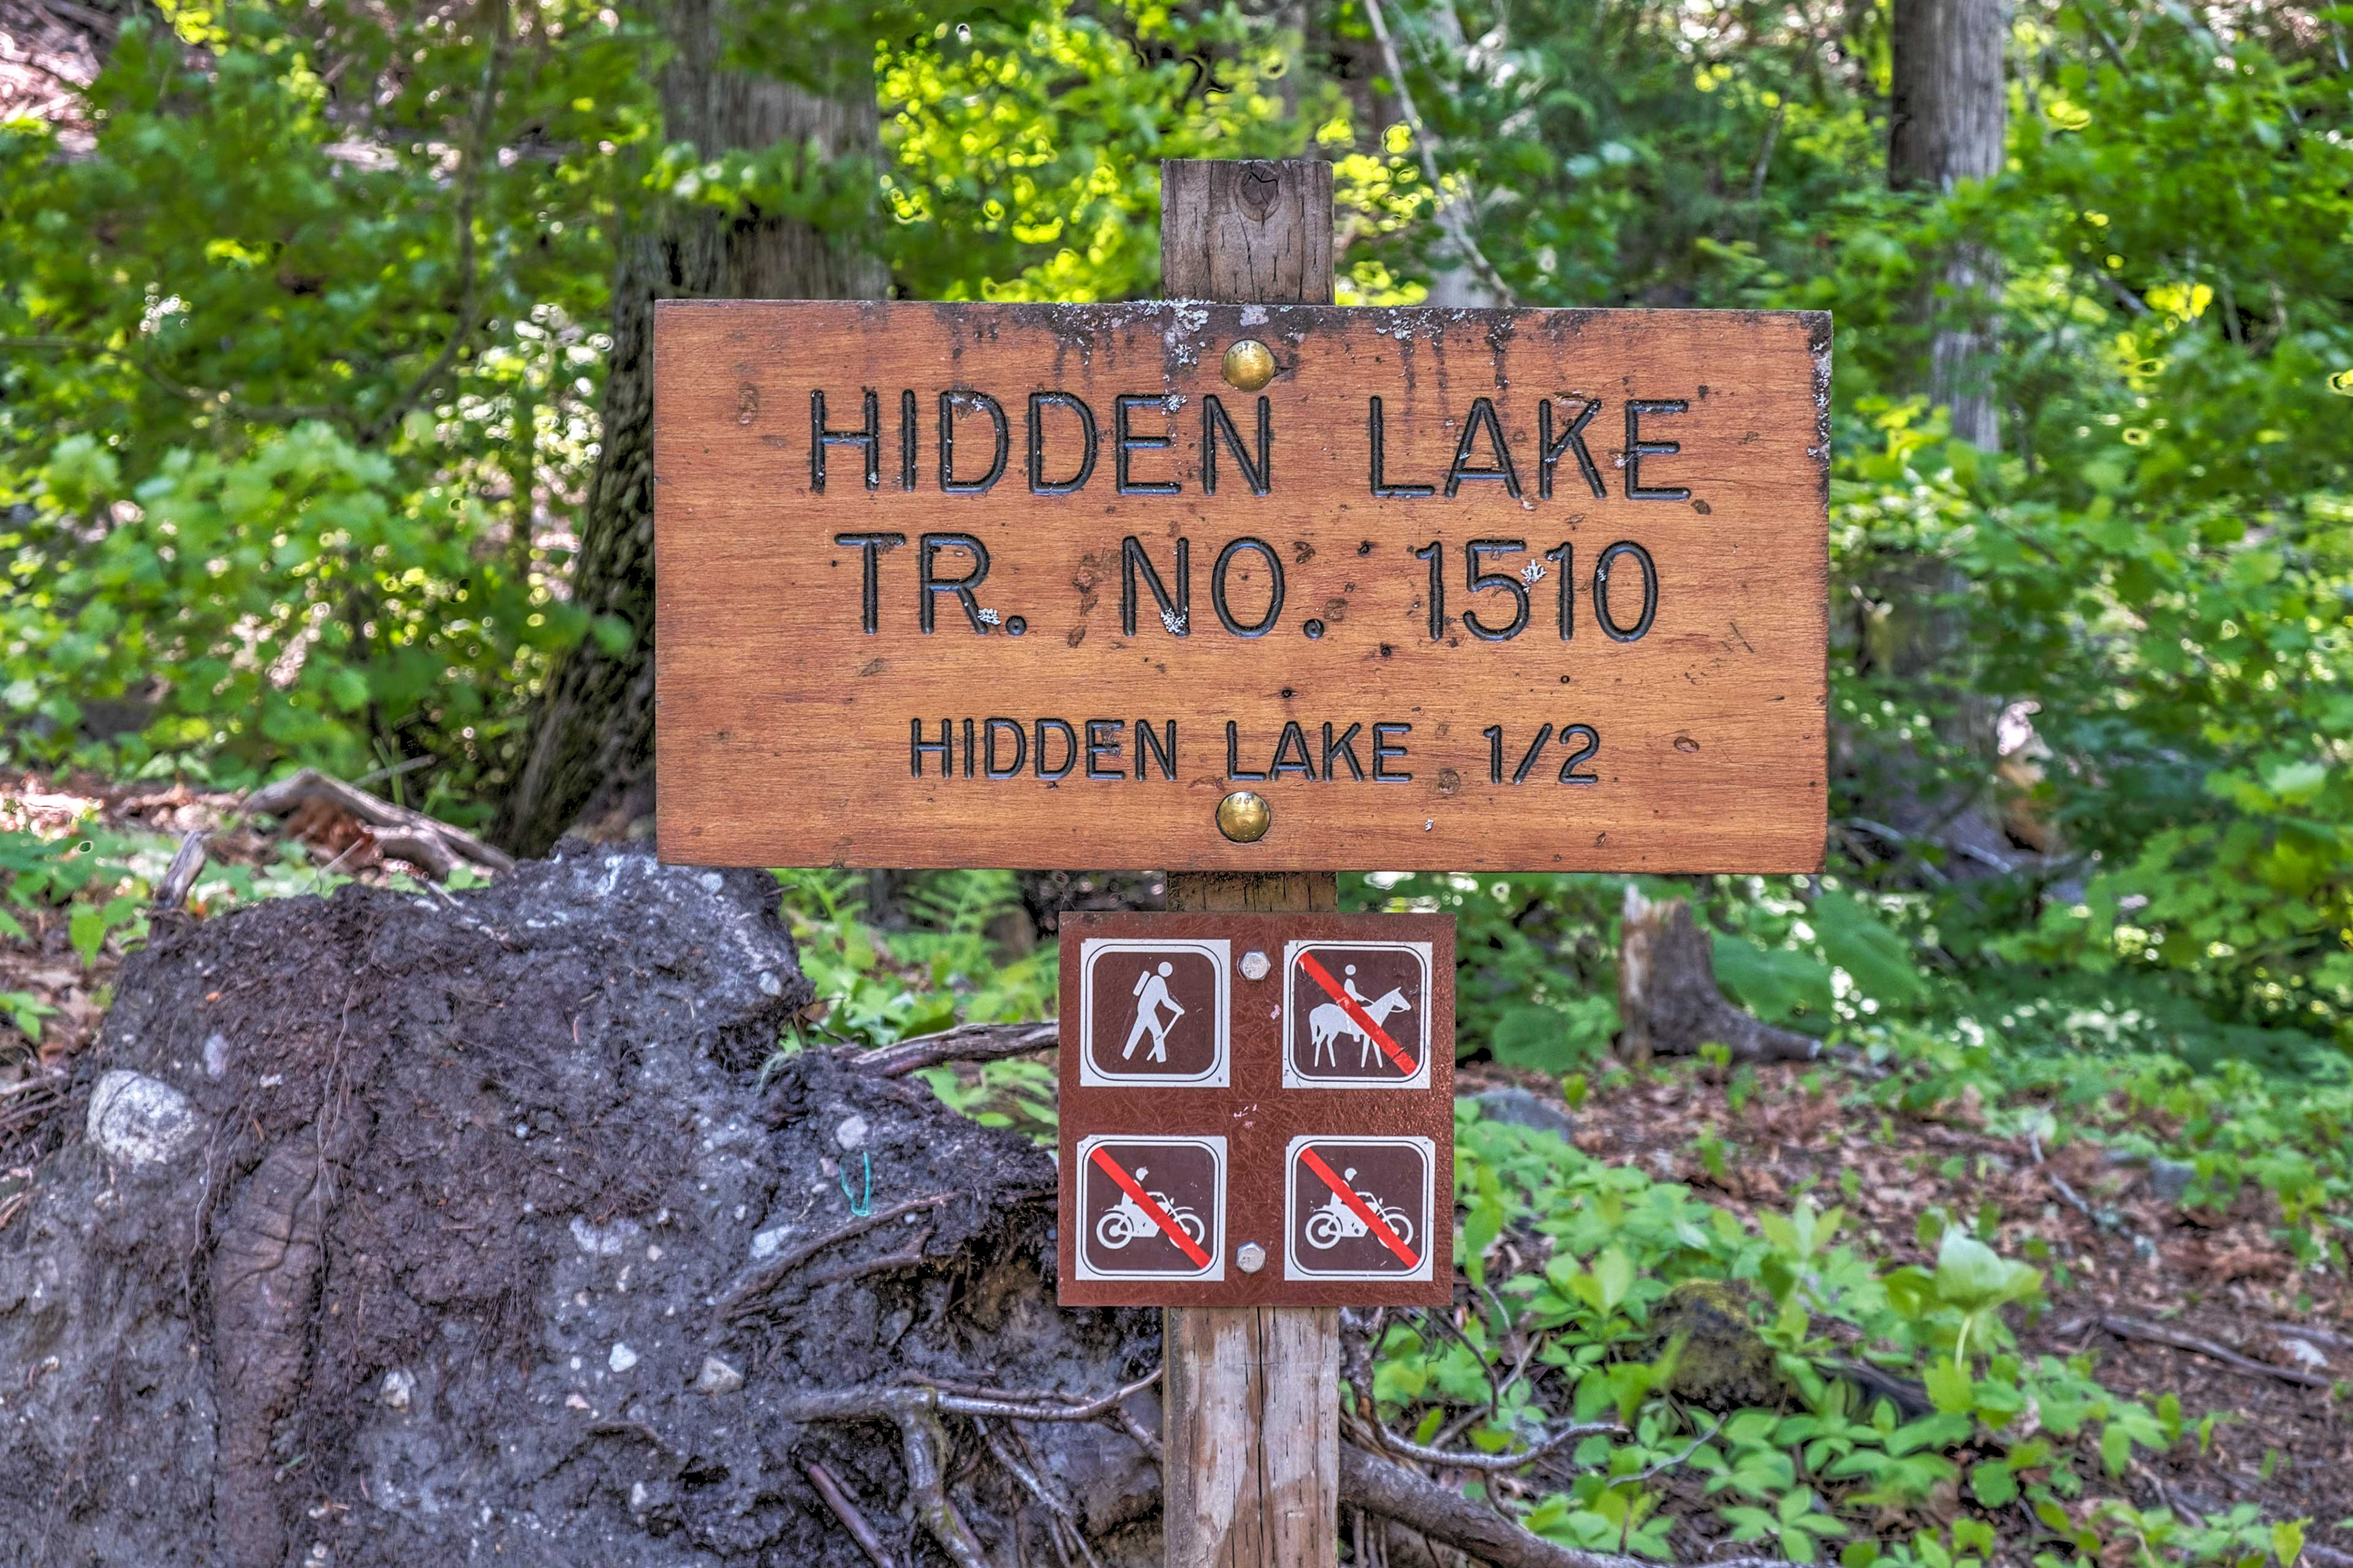 Head down to Hidden Lake for a morning stroll.